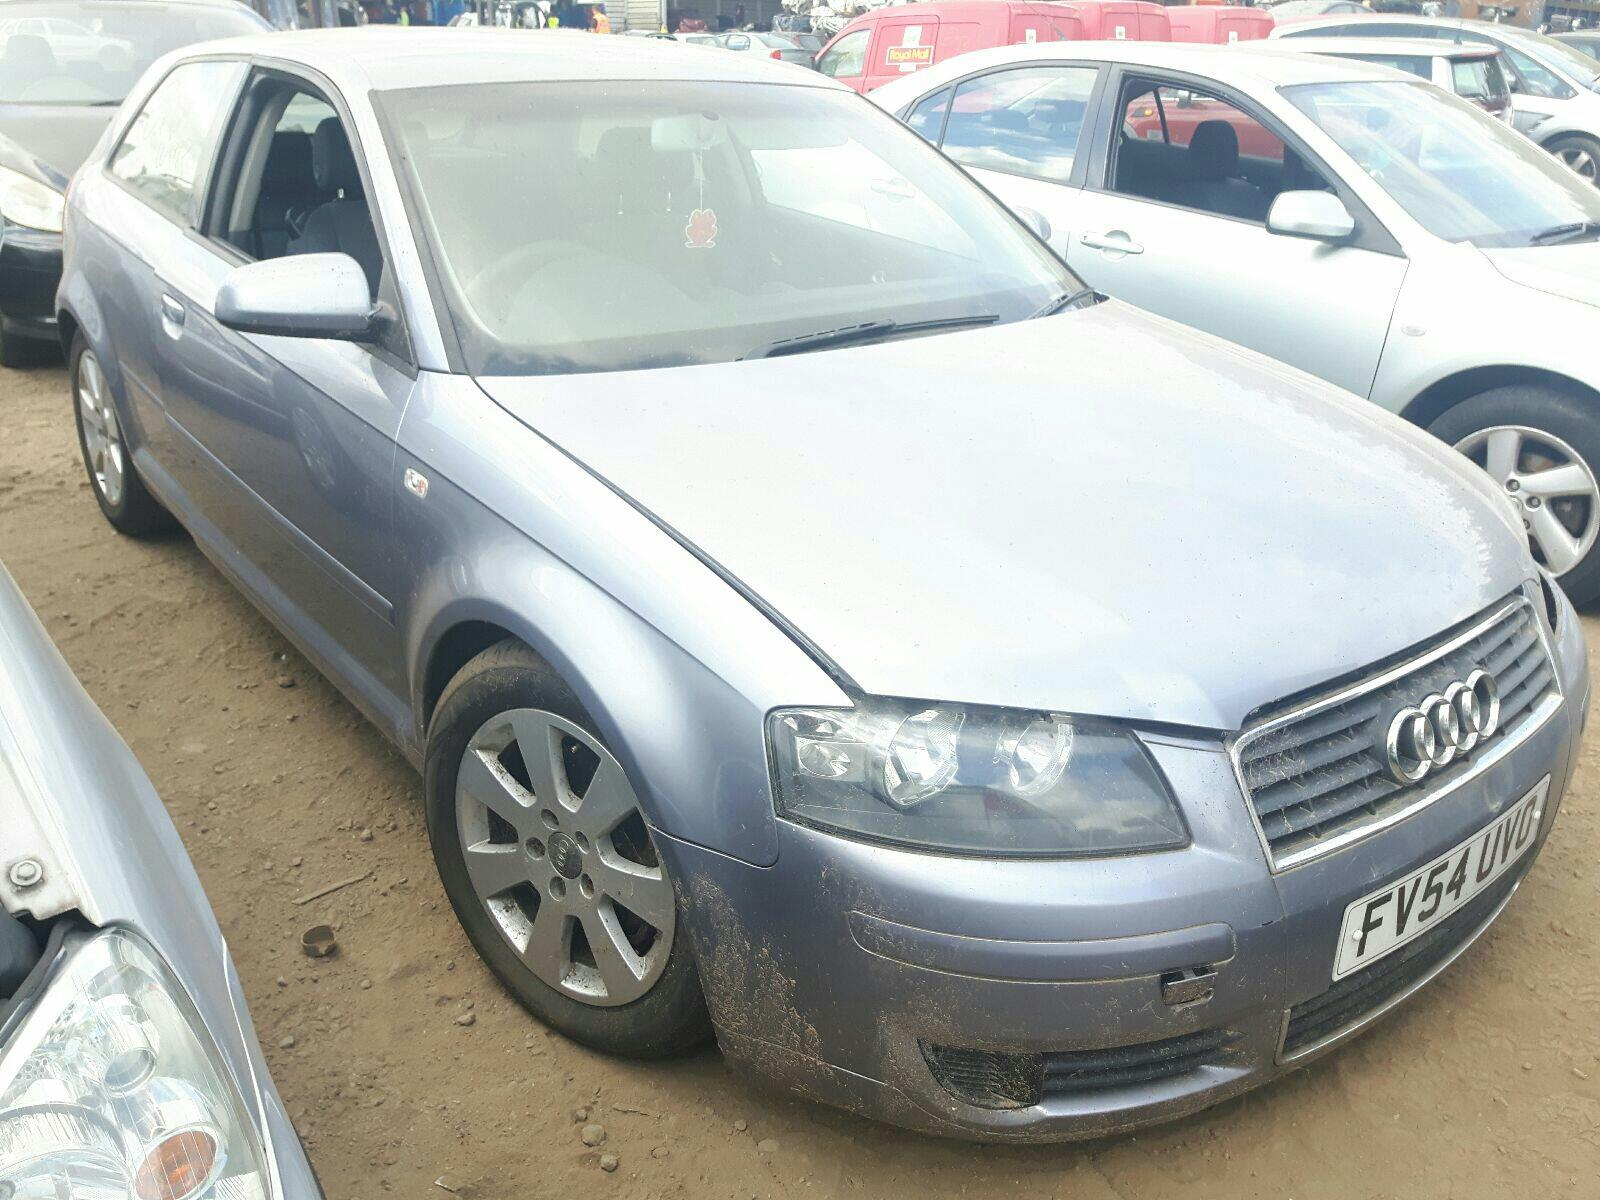 AUDI A3 SPECIAL EDITION 16V 5109234